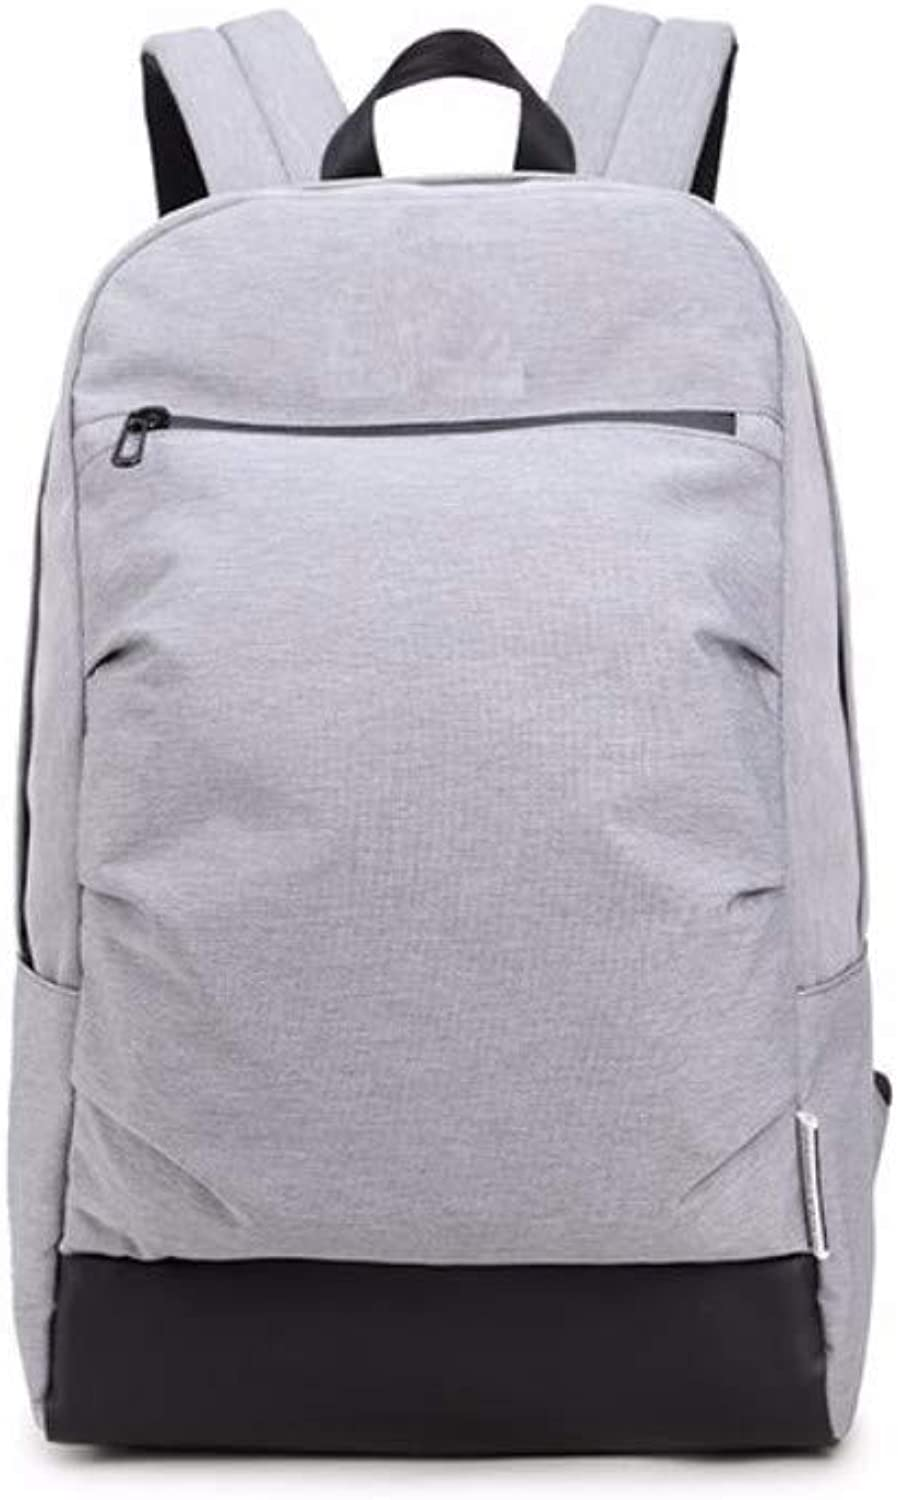 Laptop Backpack Business Computer Bag Shoulder Bag Fashion Men's and Women's Bag Oxford Zipper Backpack